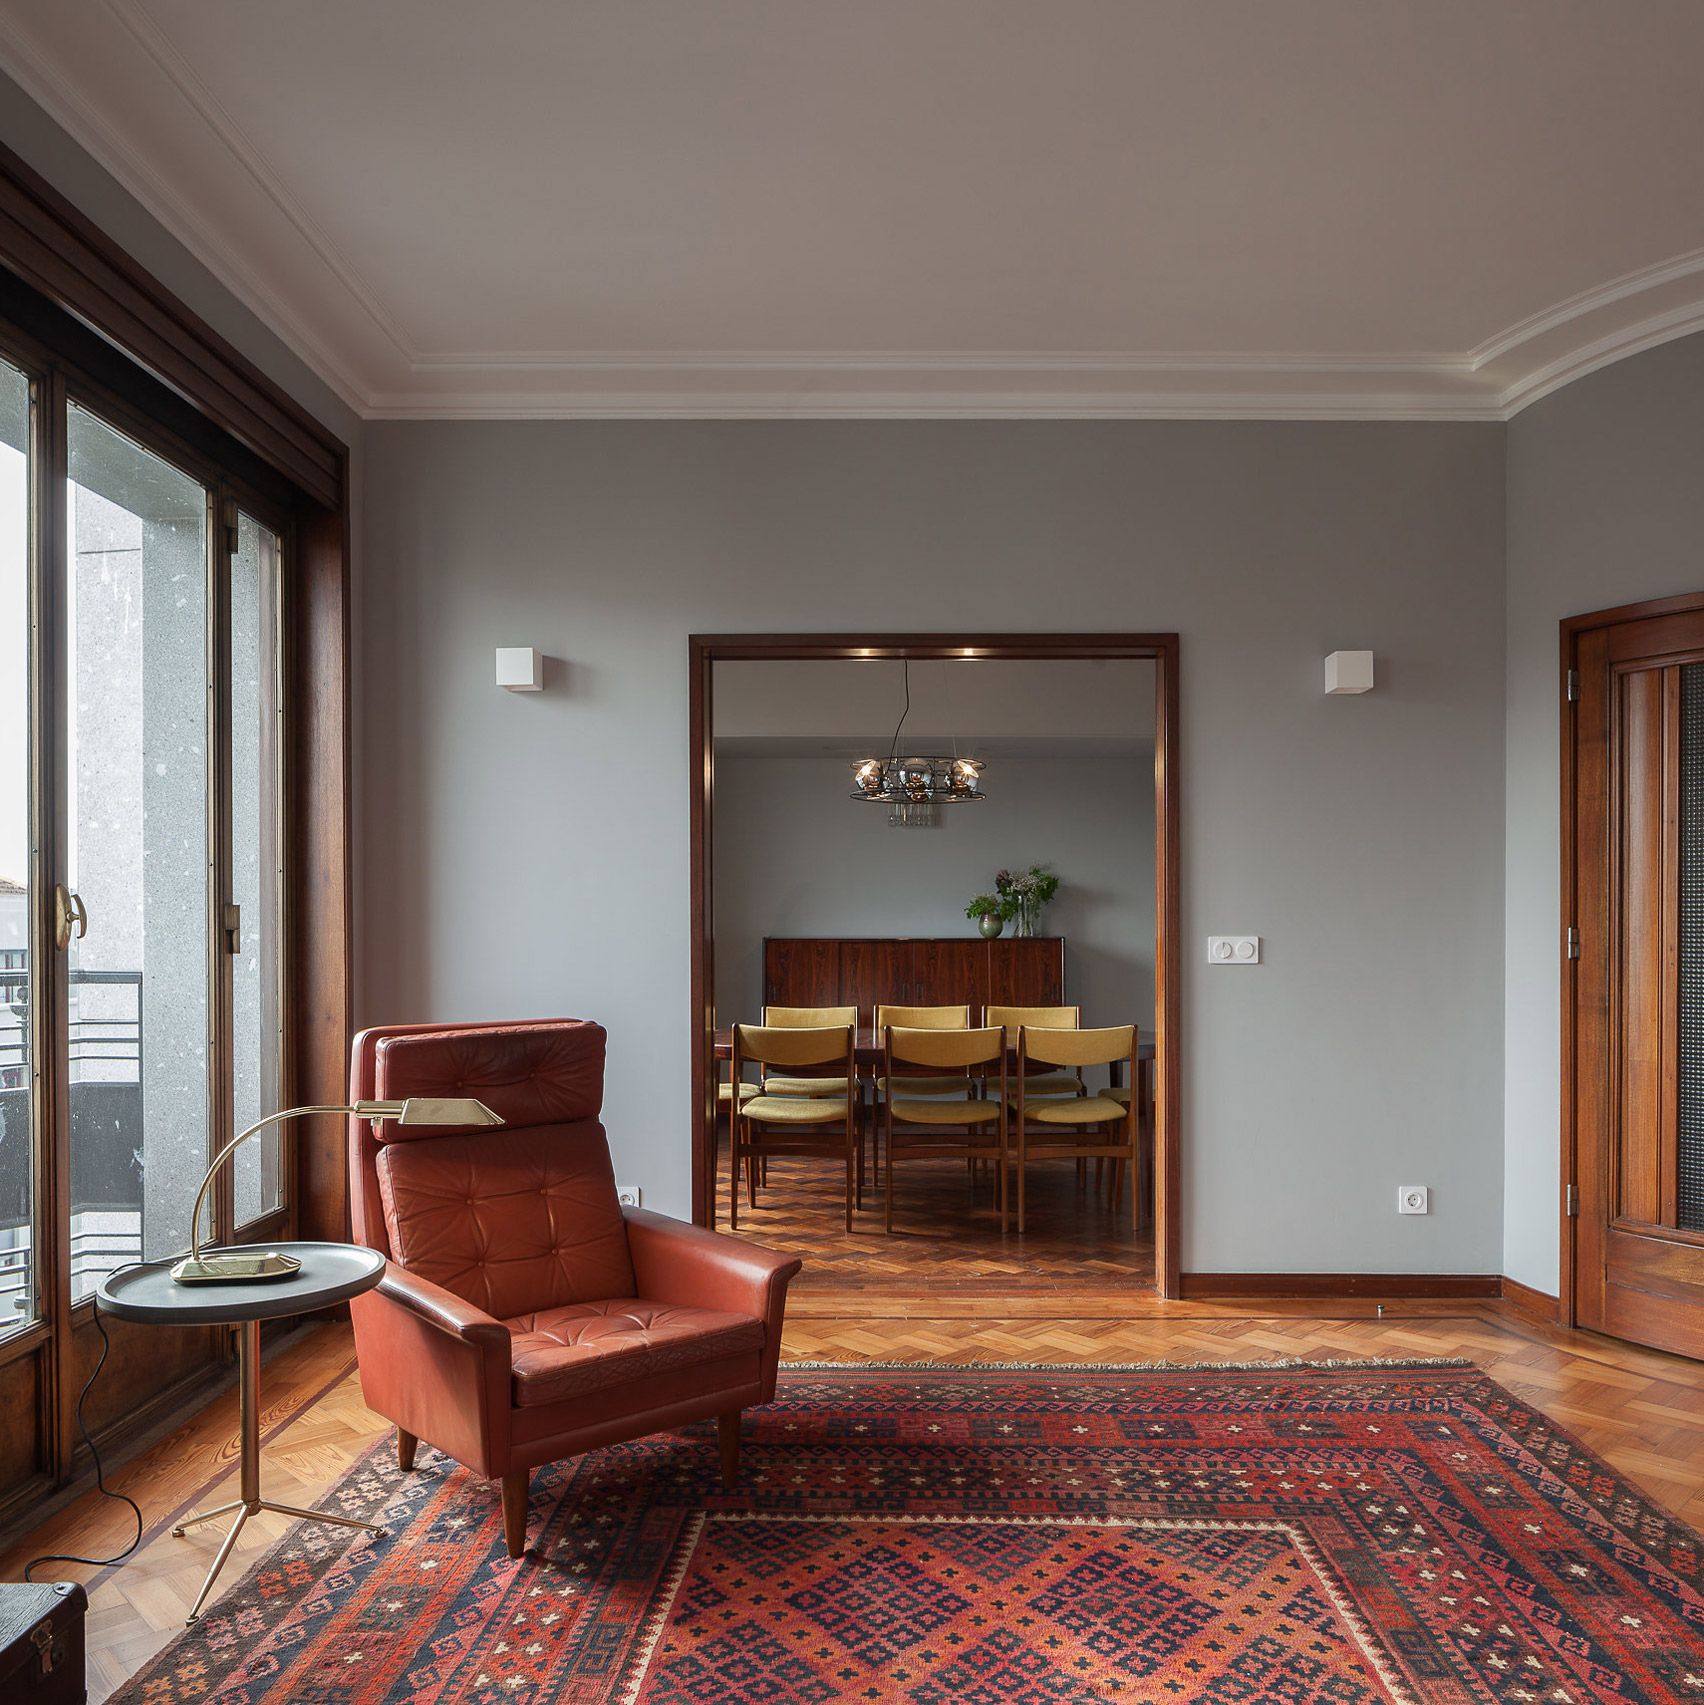 3 Dazzling Apartments With Retro Interiors In 1940s Porto Building